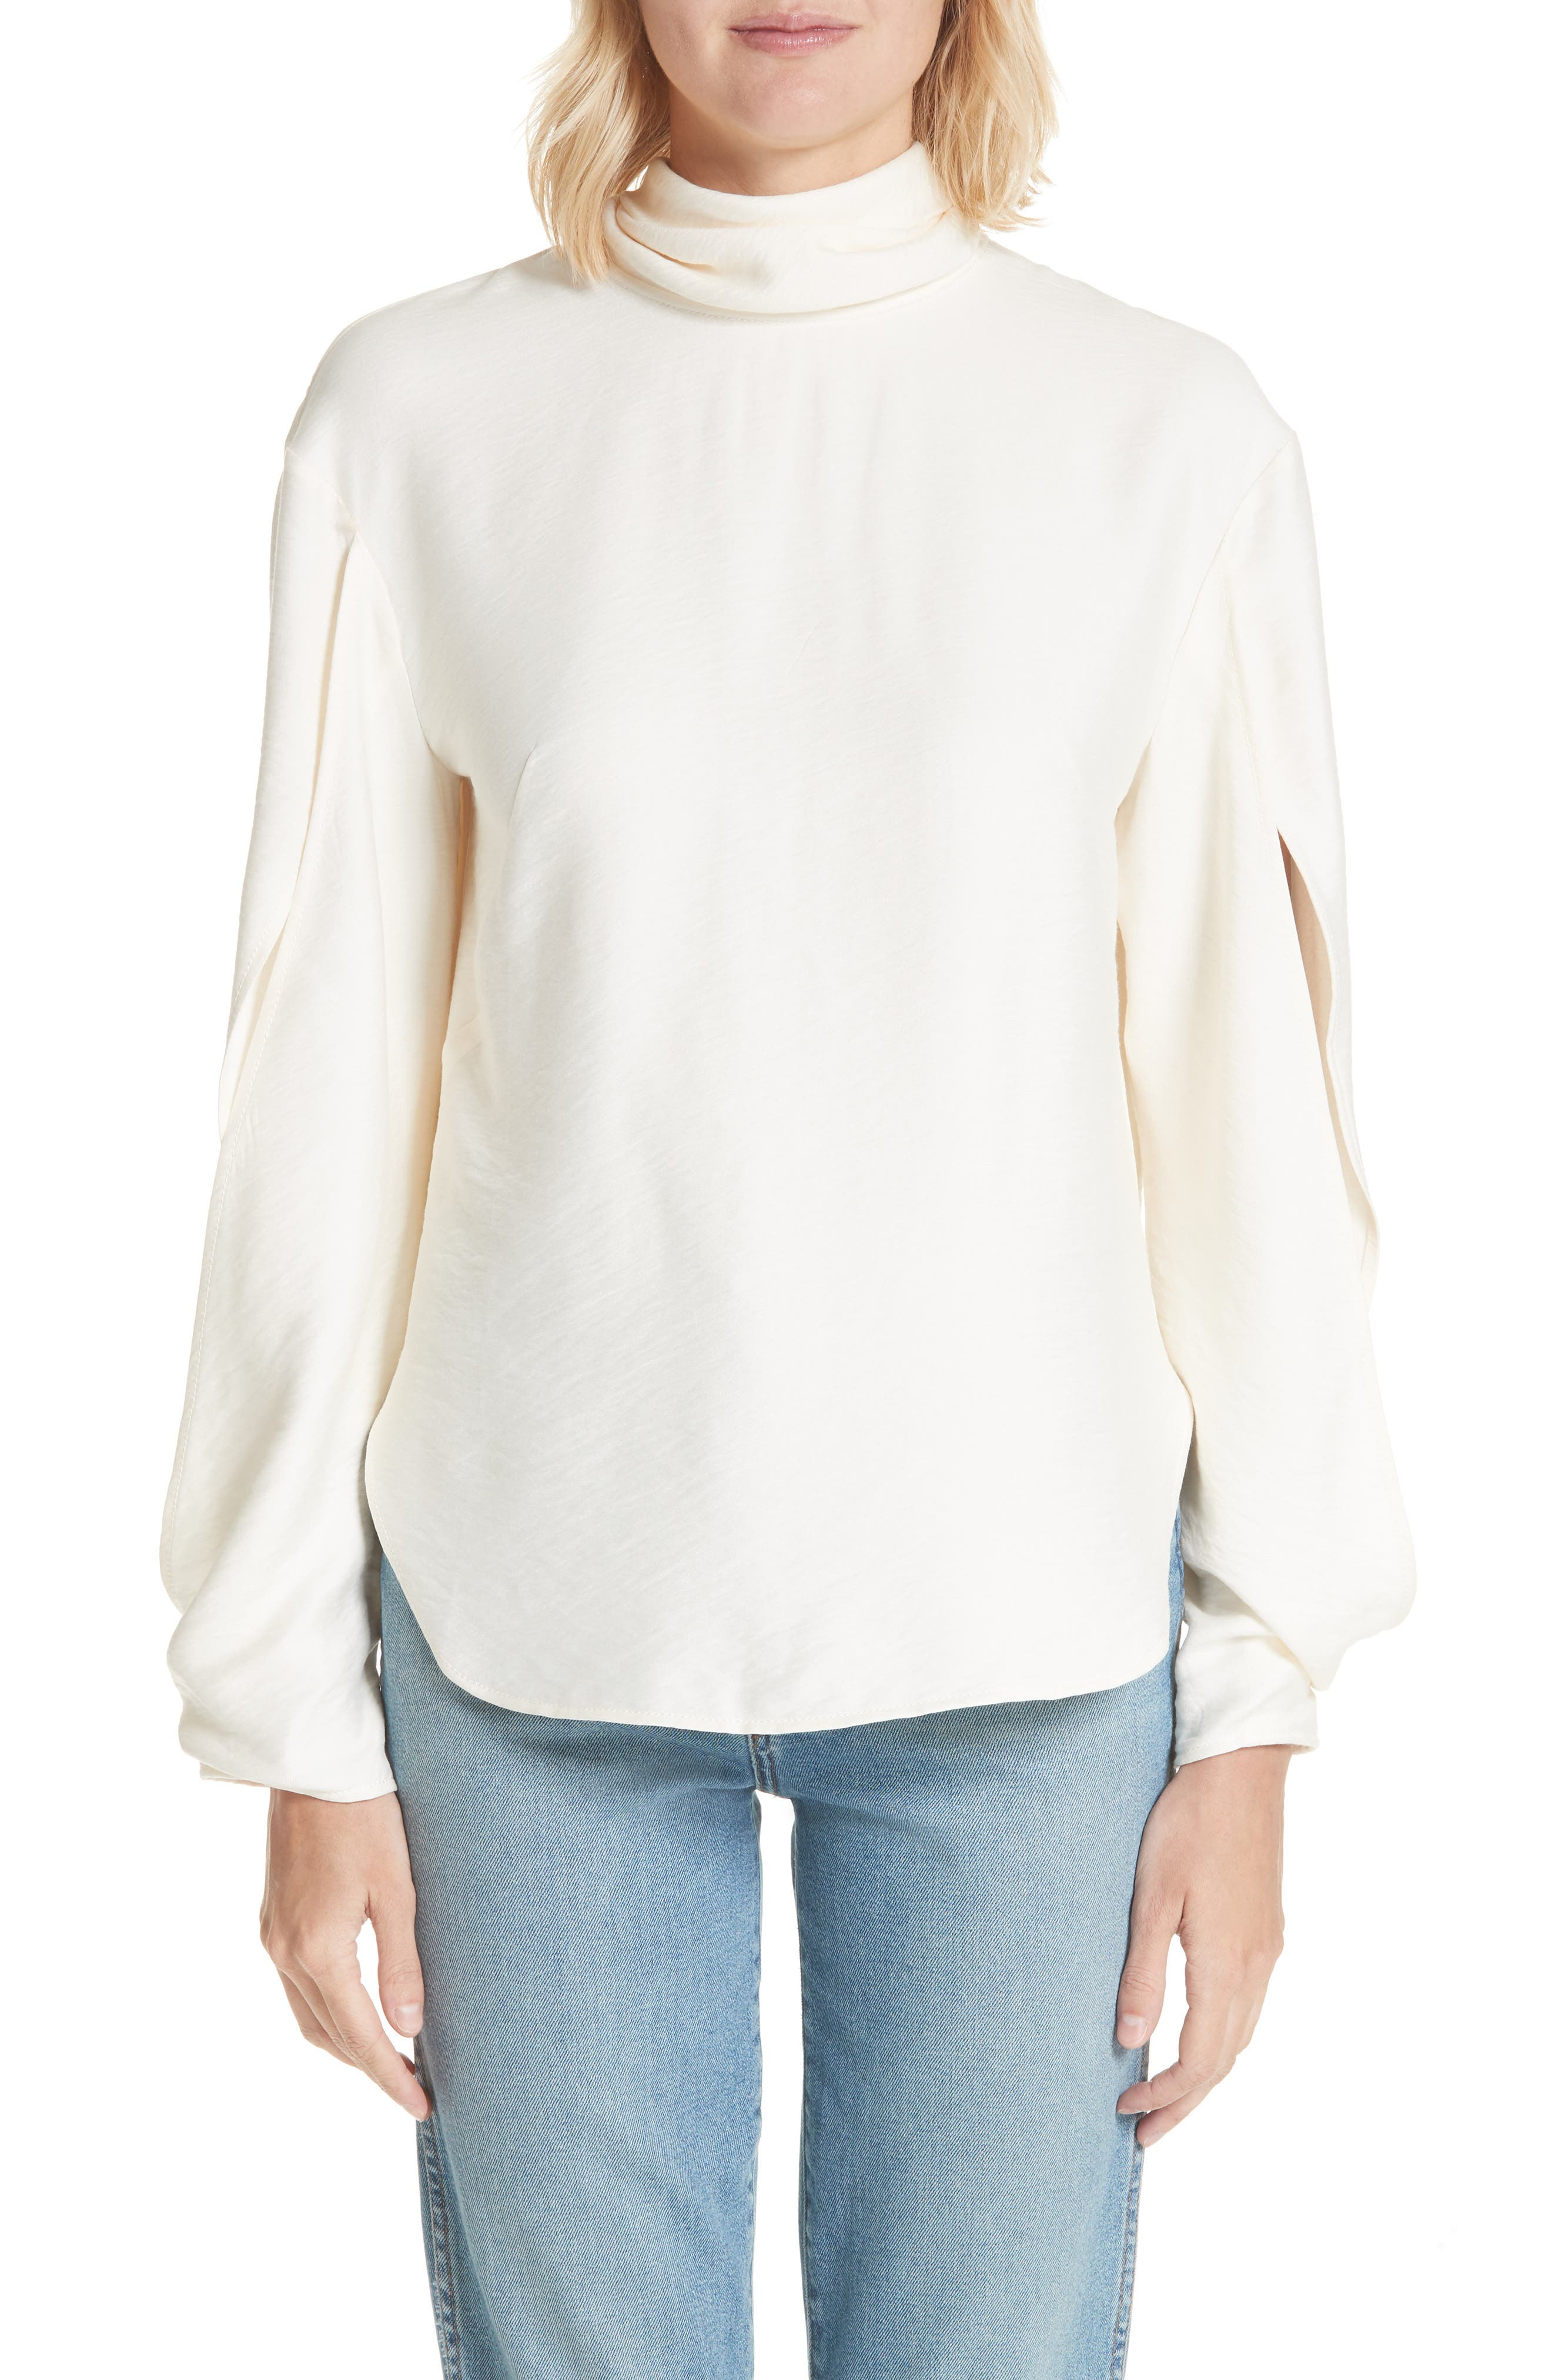 Jessie High Neck Blouse,                             Main thumbnail 1, color,                             Rayon Ivory